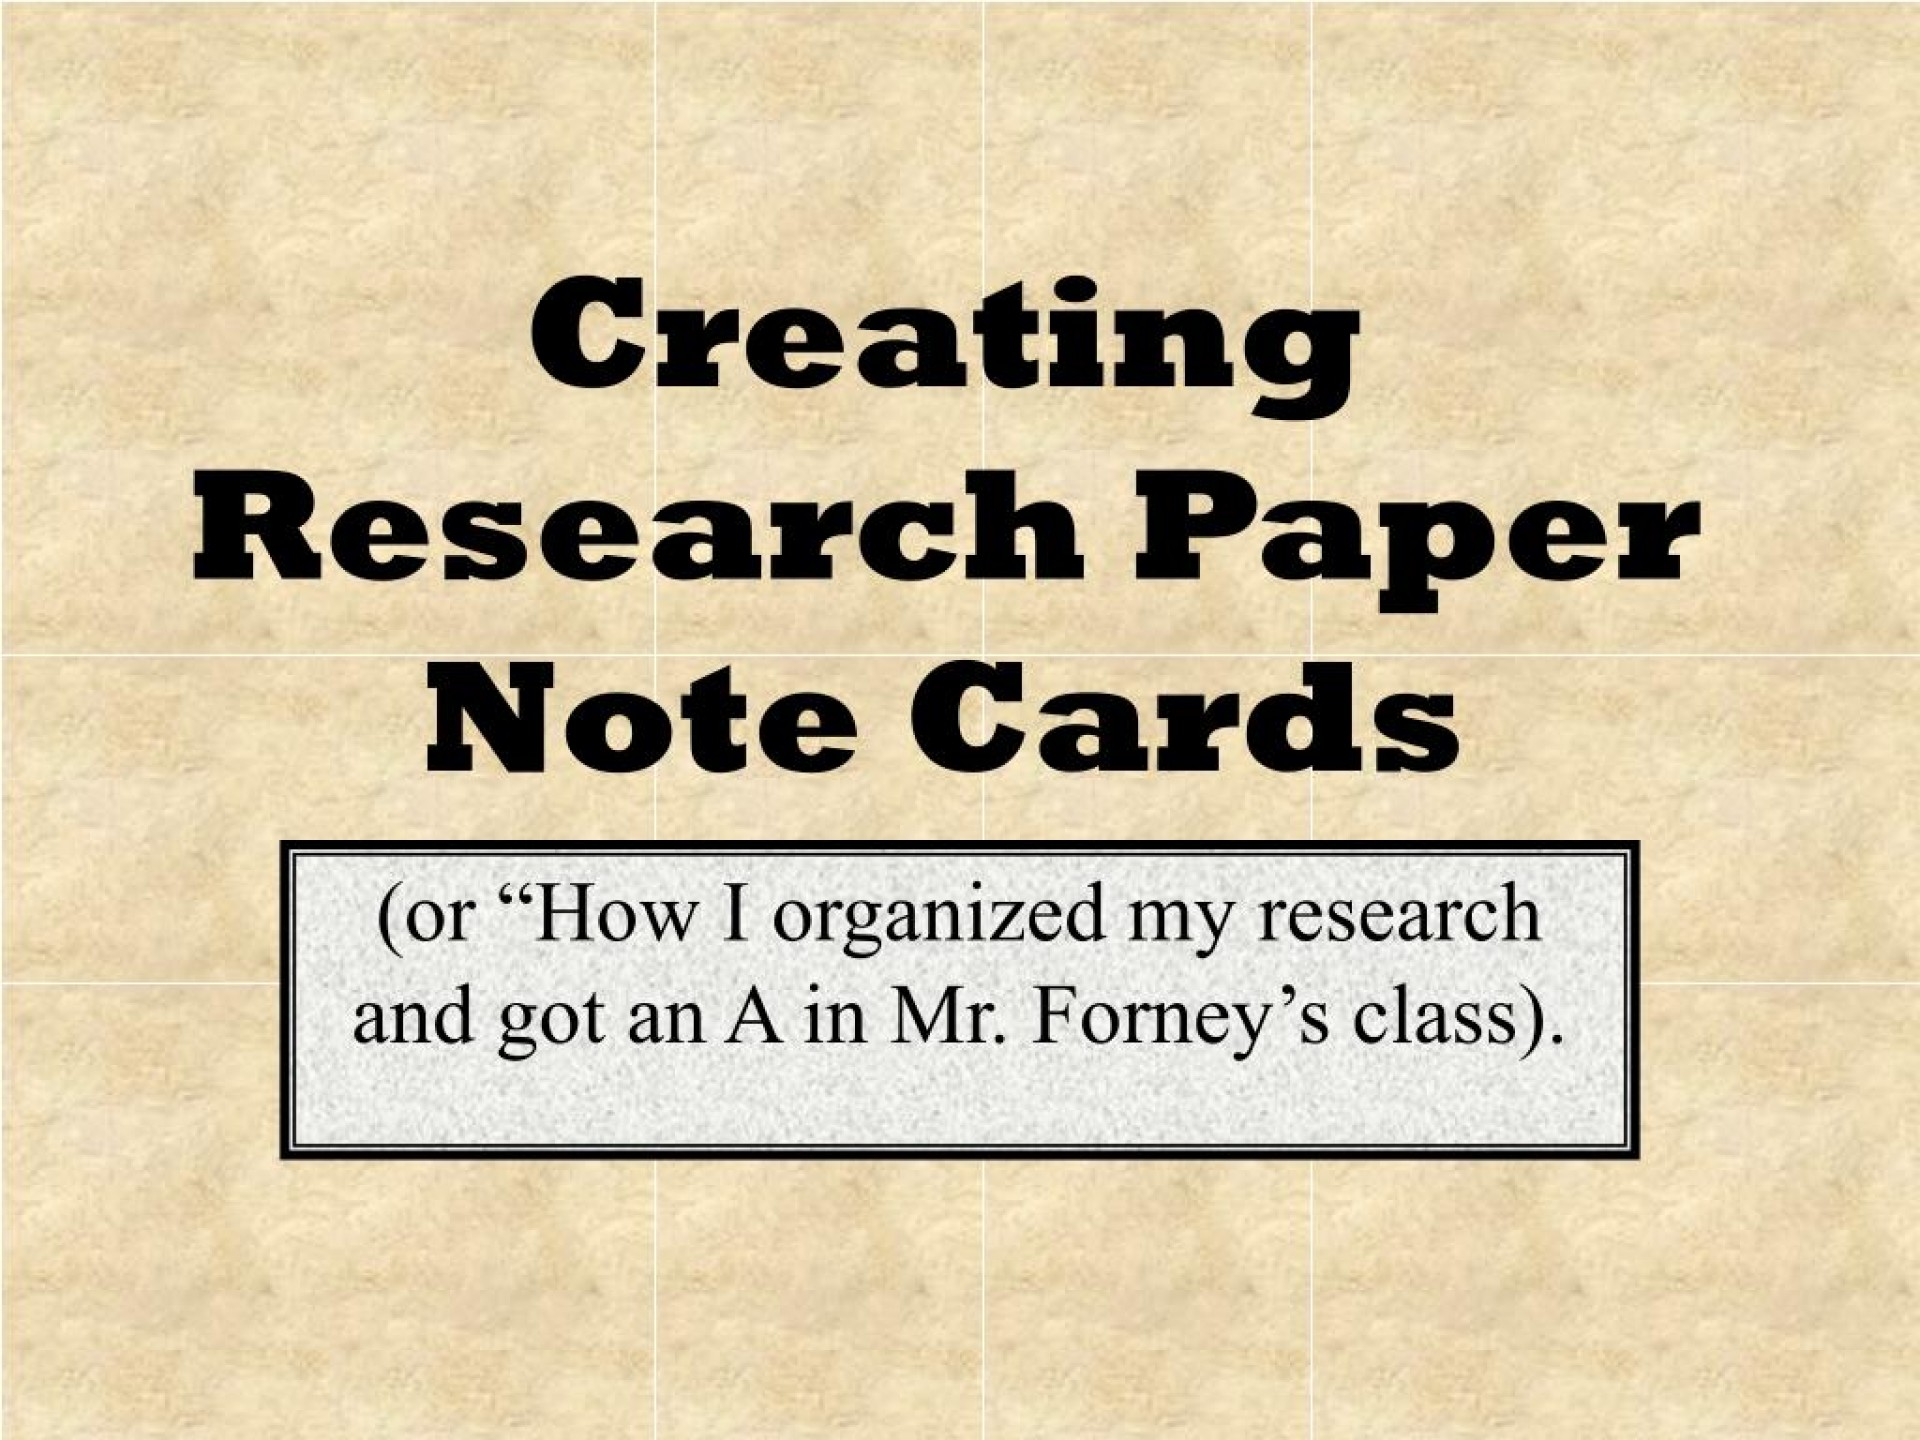 015 Formatting Notecards For Research Papers Paper Creating Note Cards Fascinating 1920